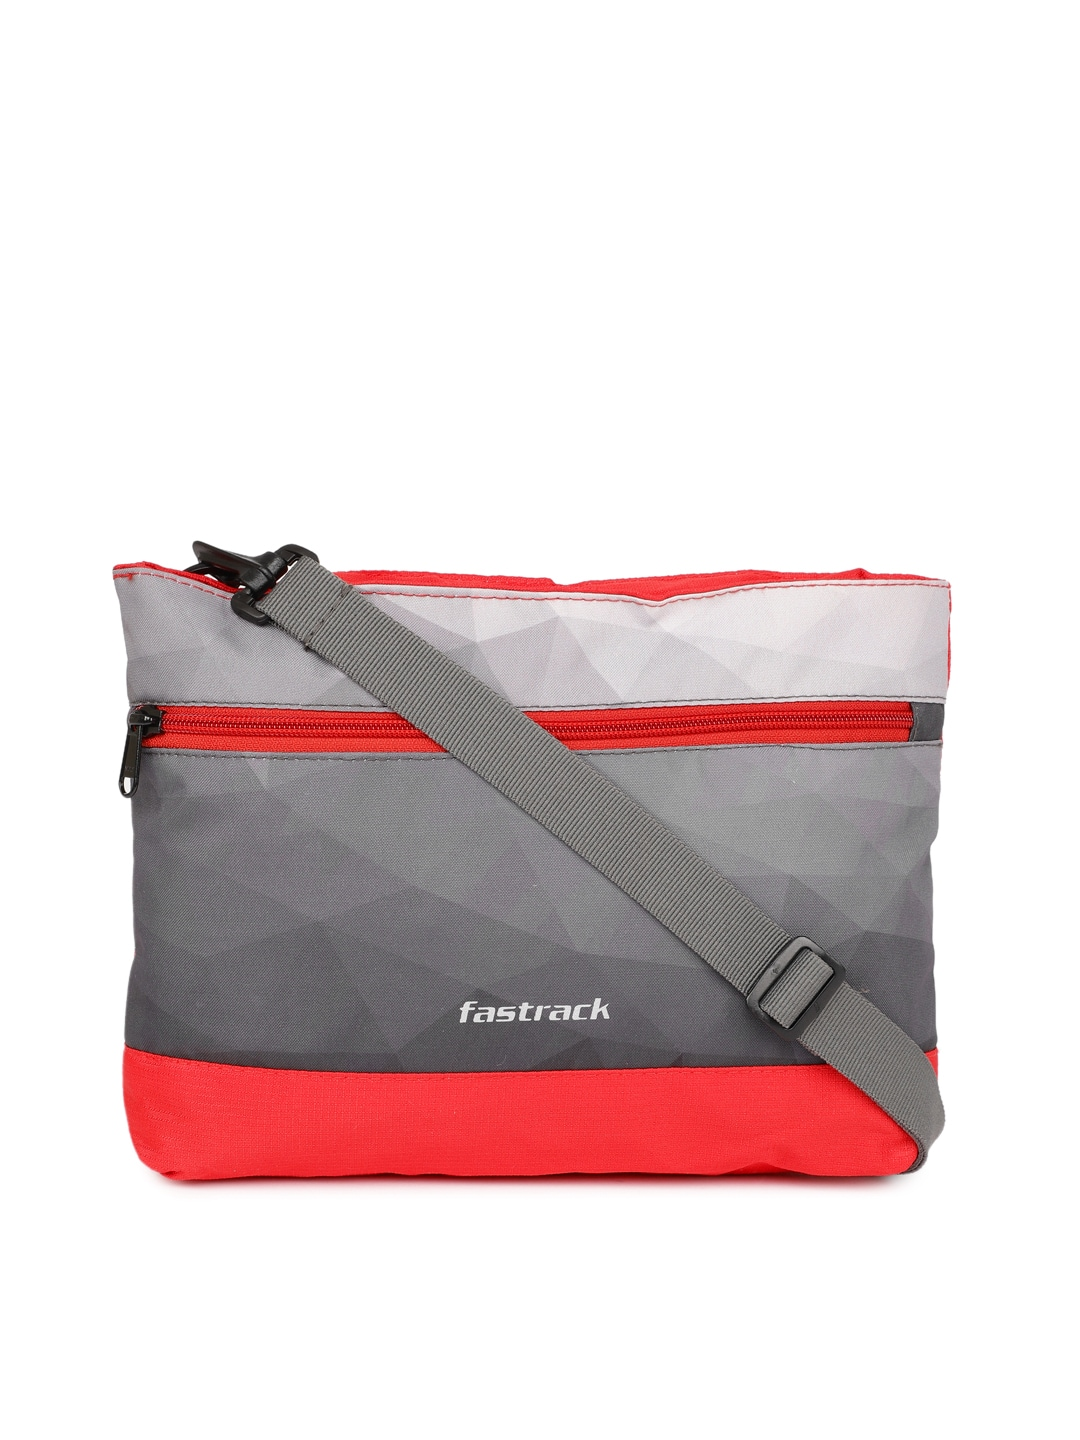 2273125256d9 Fastrack Bags - Buy Fastrack Bags Online in India